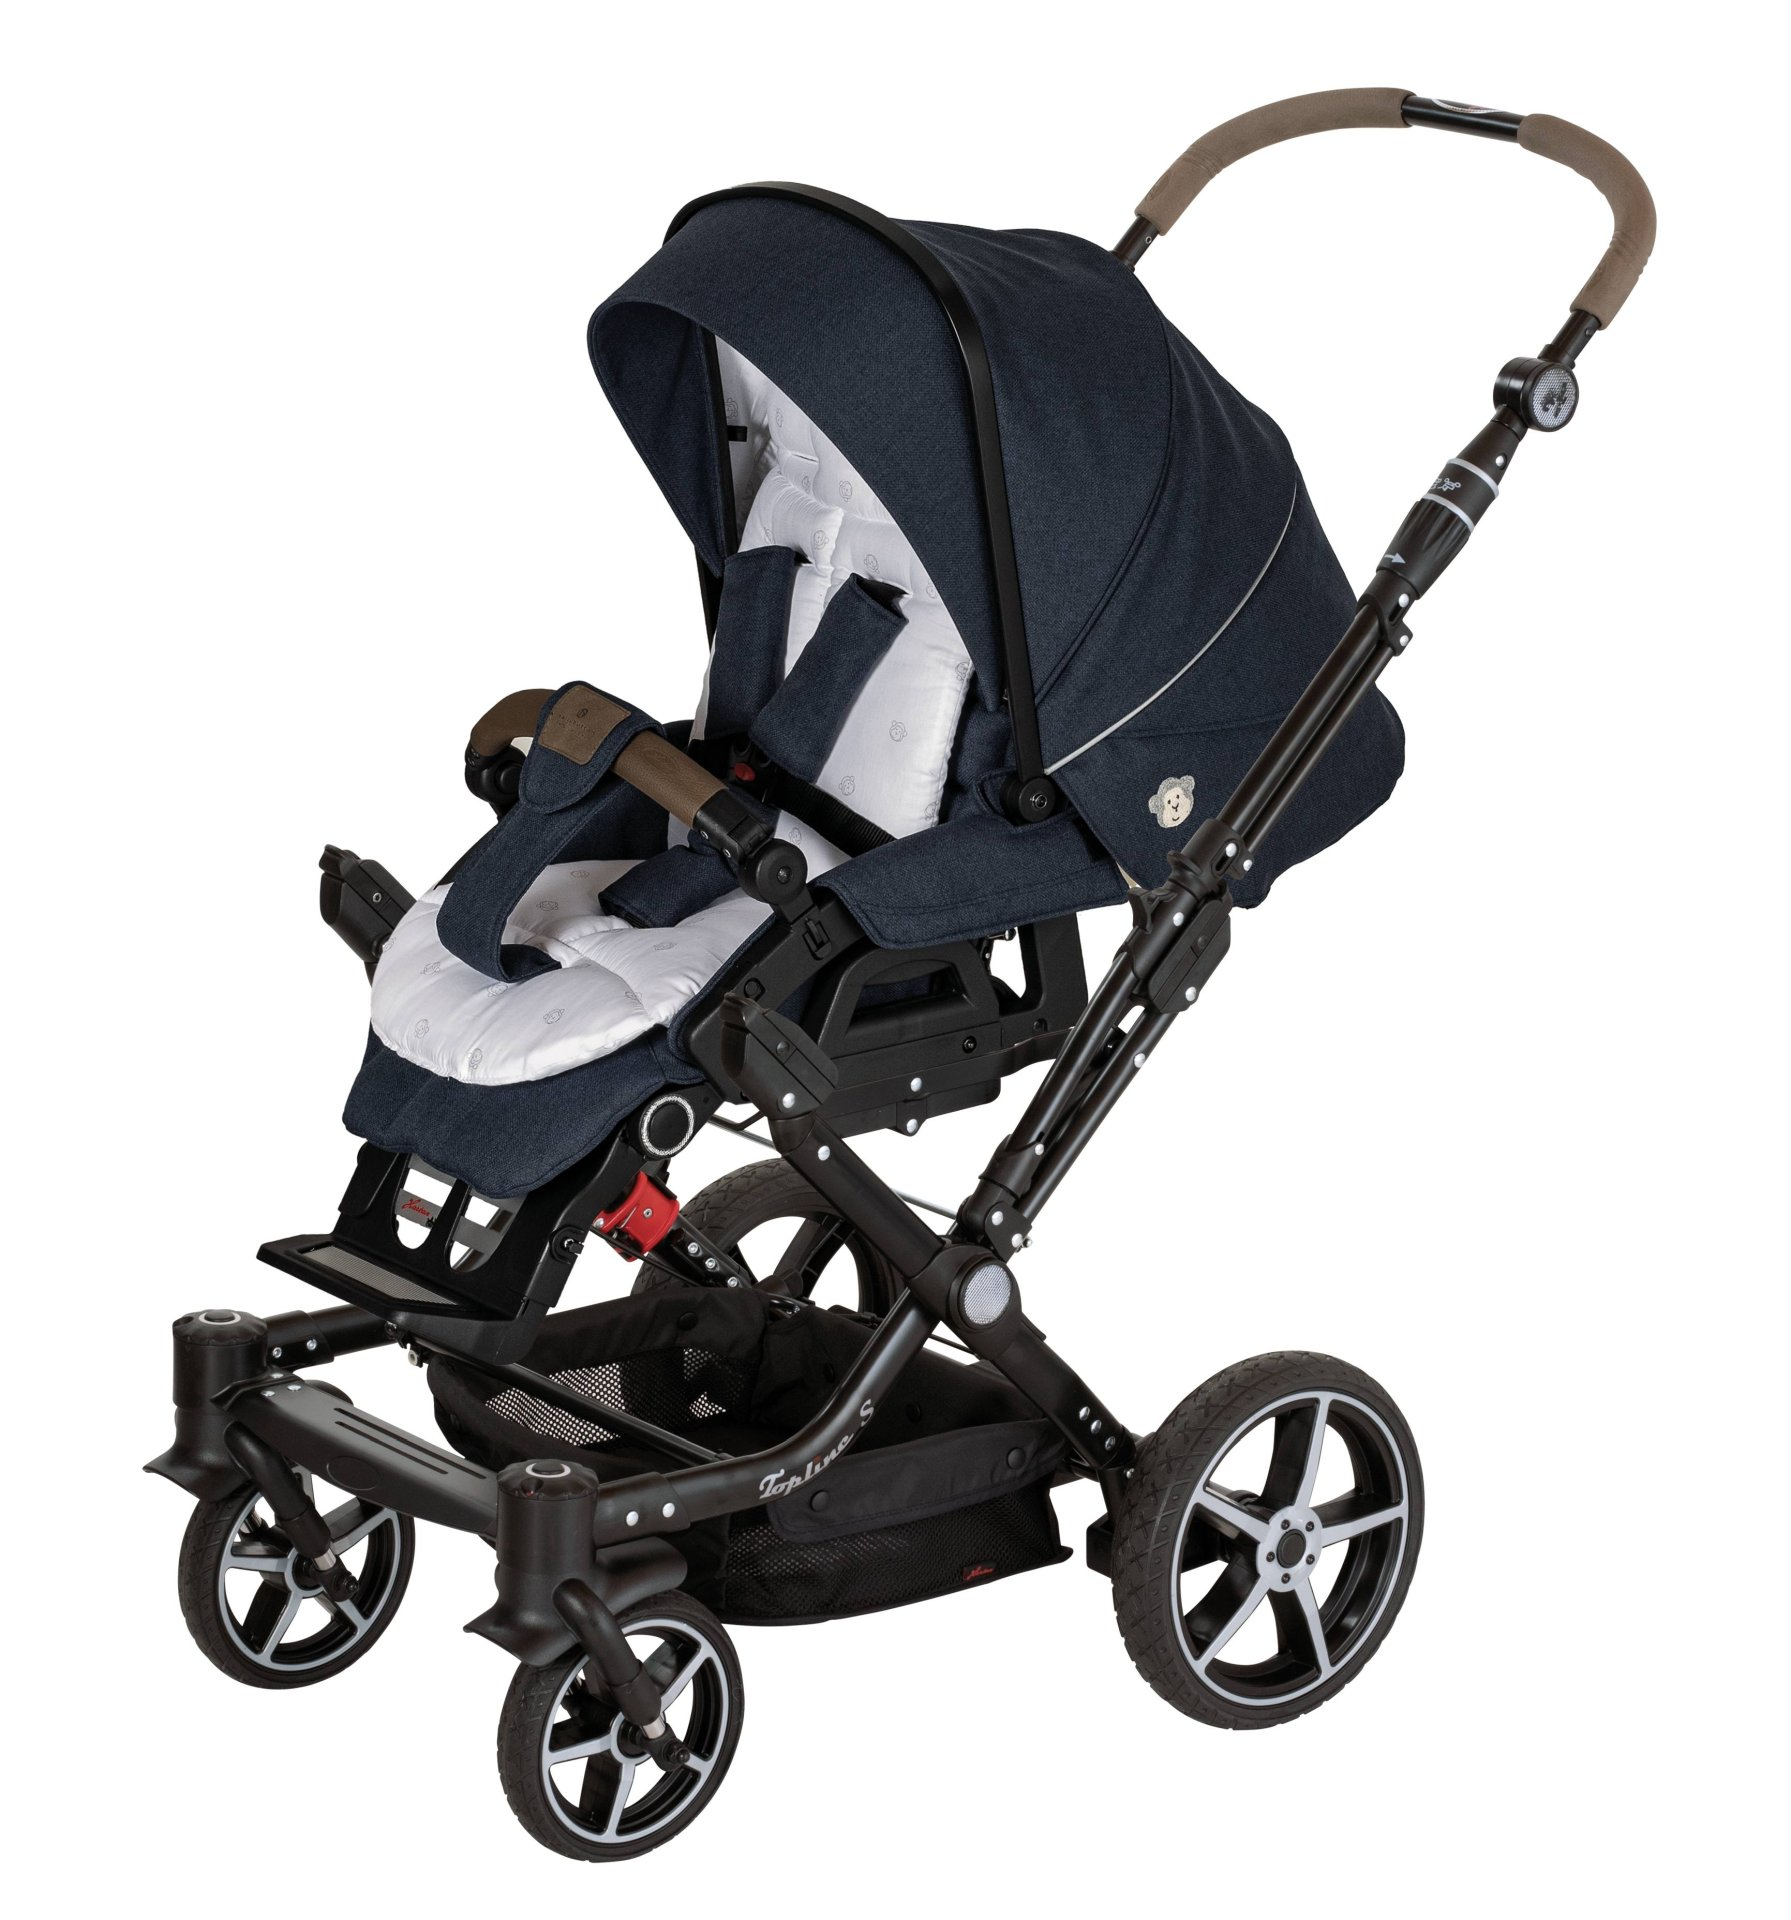 hartan stroller topline s 2019 649 bellybutton navy blazer. Black Bedroom Furniture Sets. Home Design Ideas